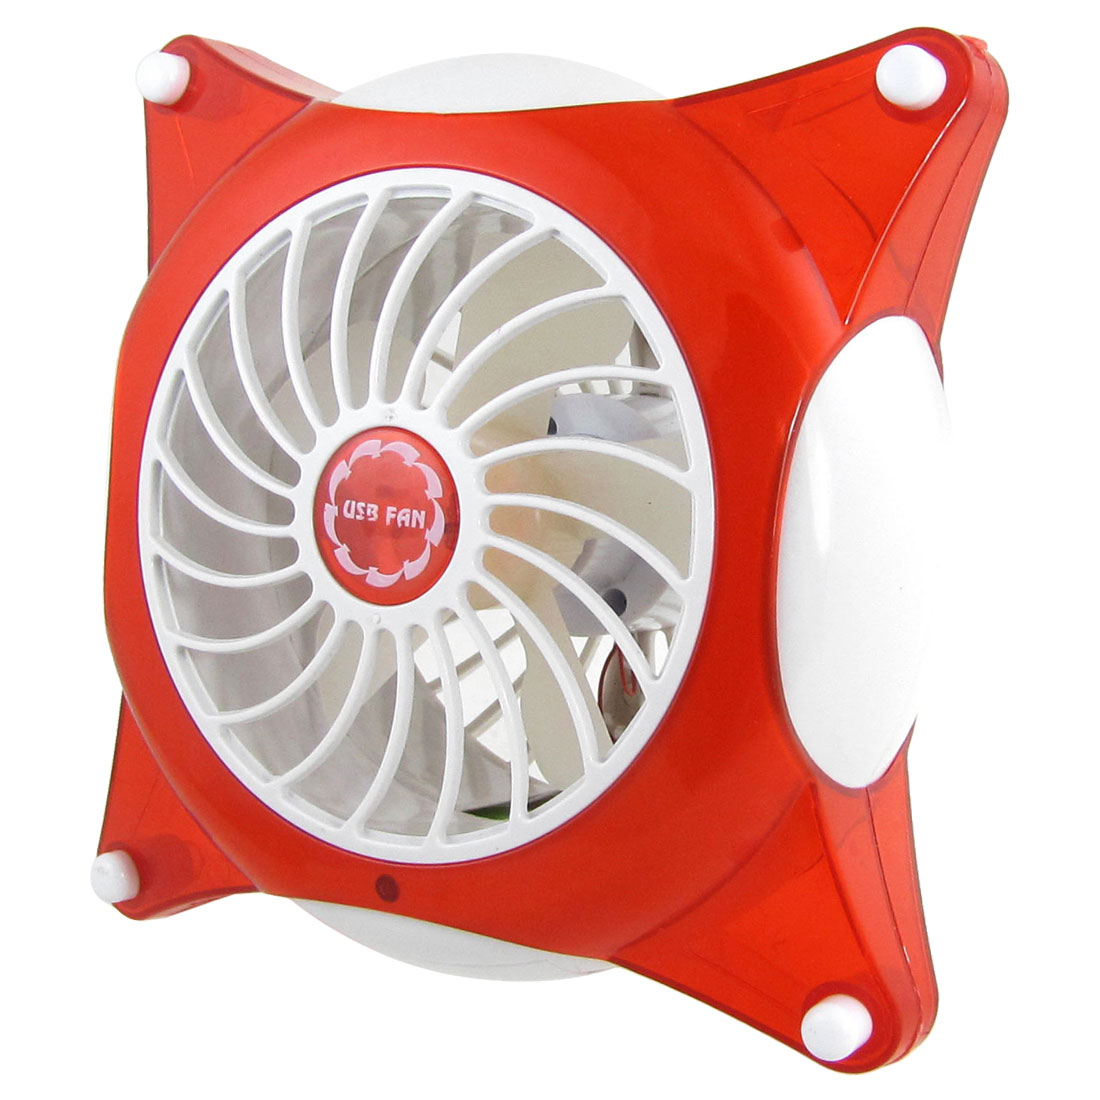 Red White Battery Operated Mini Handy Fan with USB Cable Cord